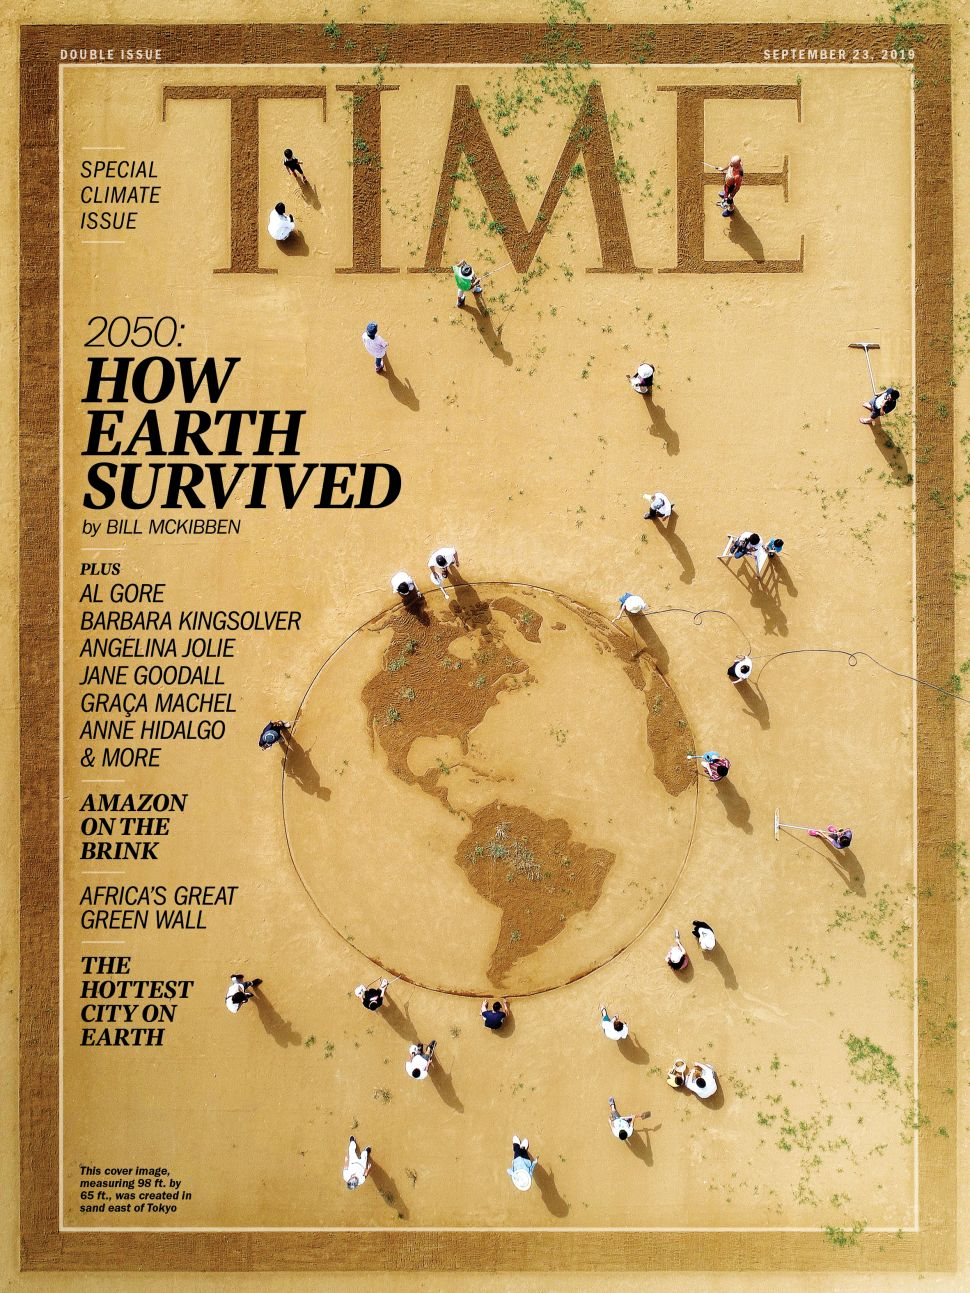 How Toshihiko Hosaka Made the Image on 'Time' Magazine's Climate Change Cover Out of Sand